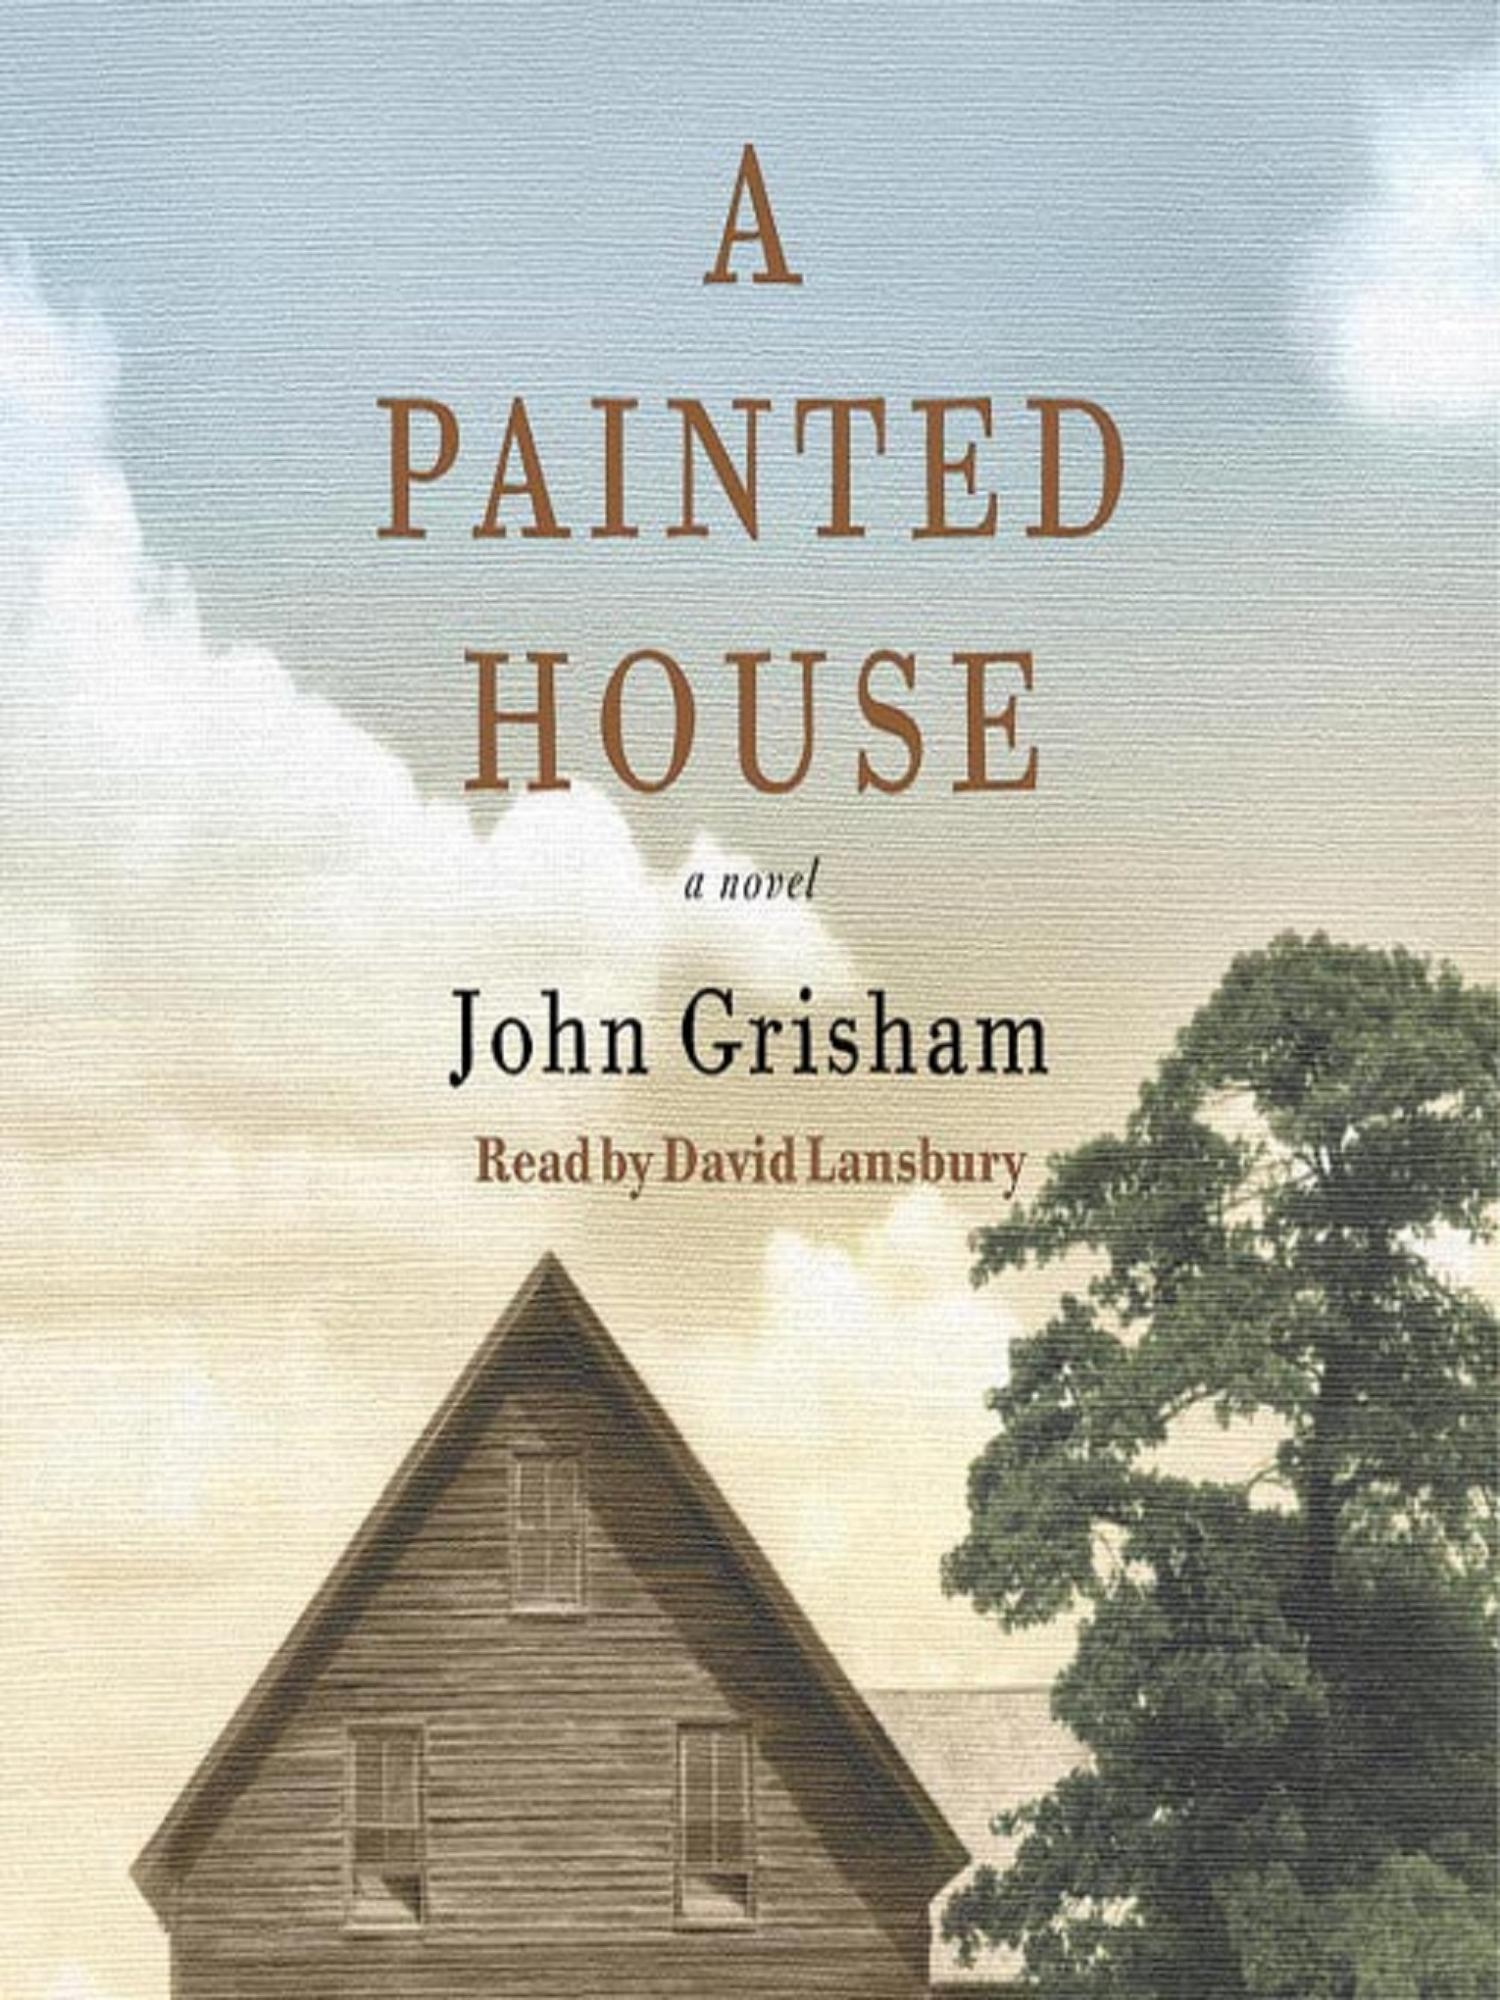 A Painted House by John Grisham #books #bookreviews